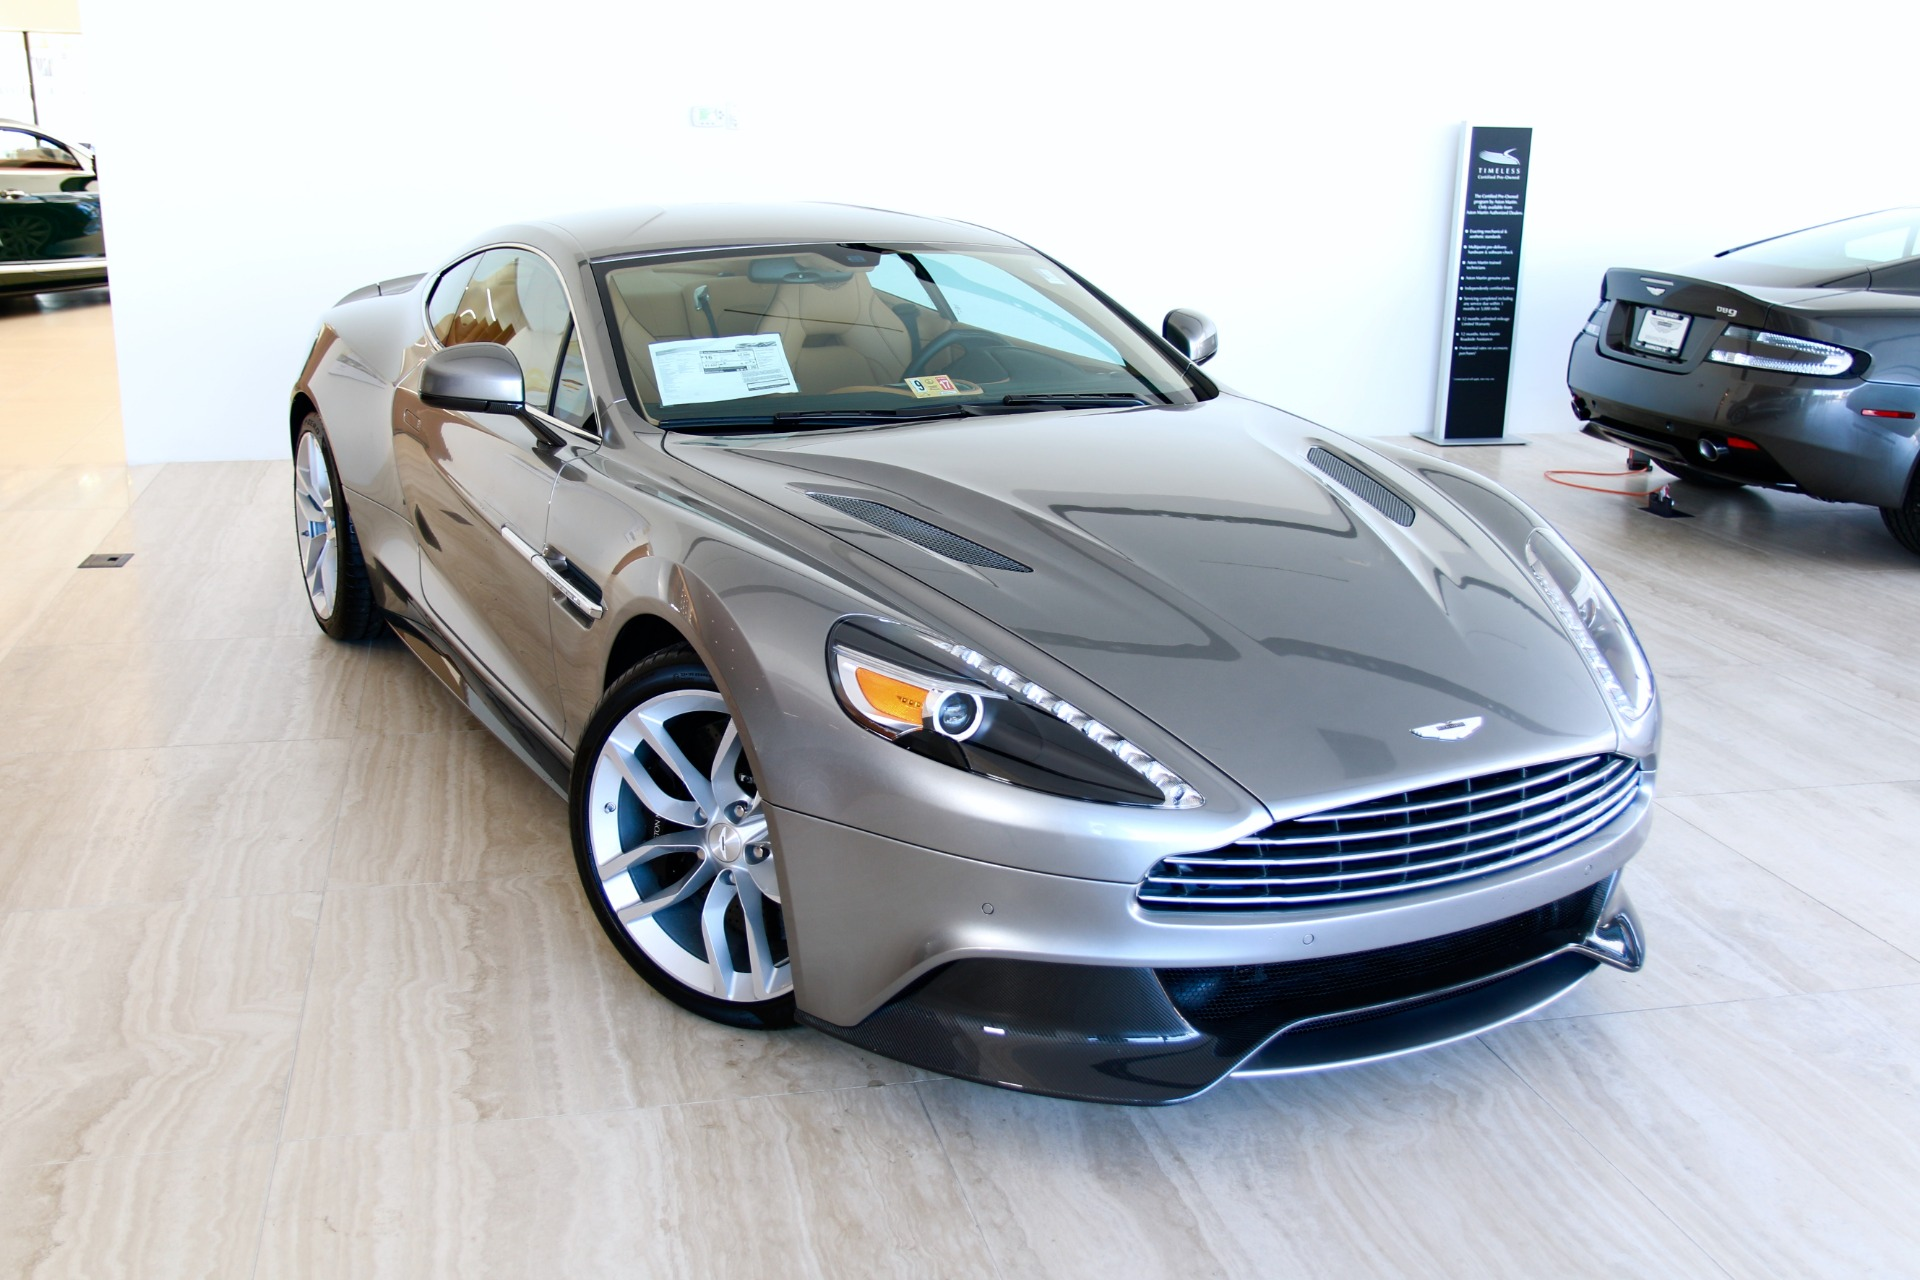 2017 Aston Martin Vanquish Stock 7NJ for sale near Vienna